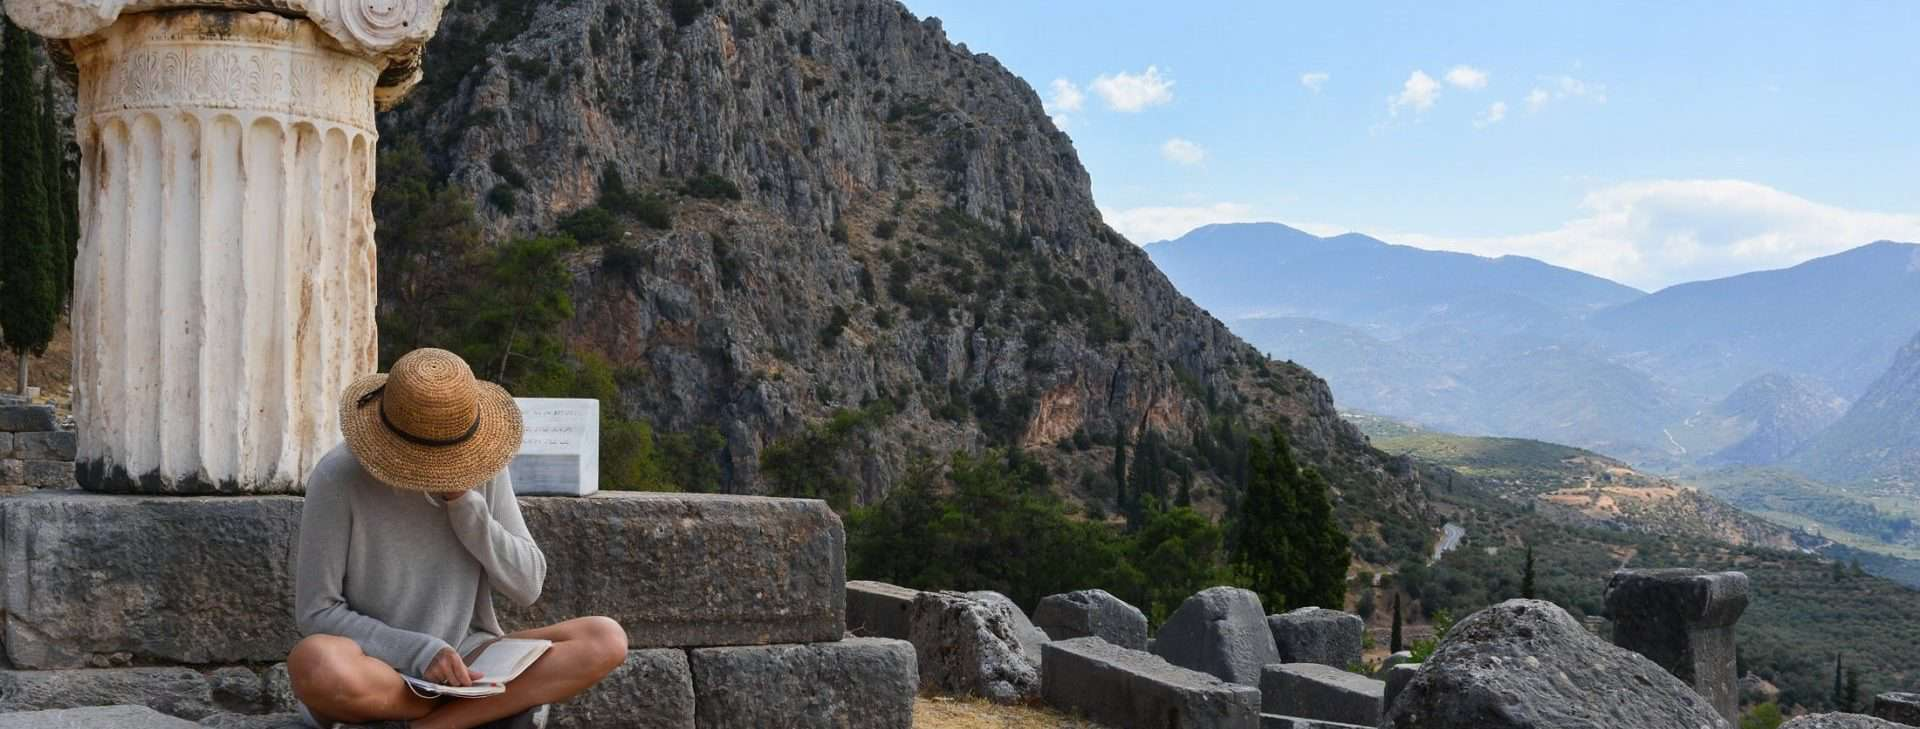 Efi reading in Delphi among the ruins - Our Story Definitely Greece